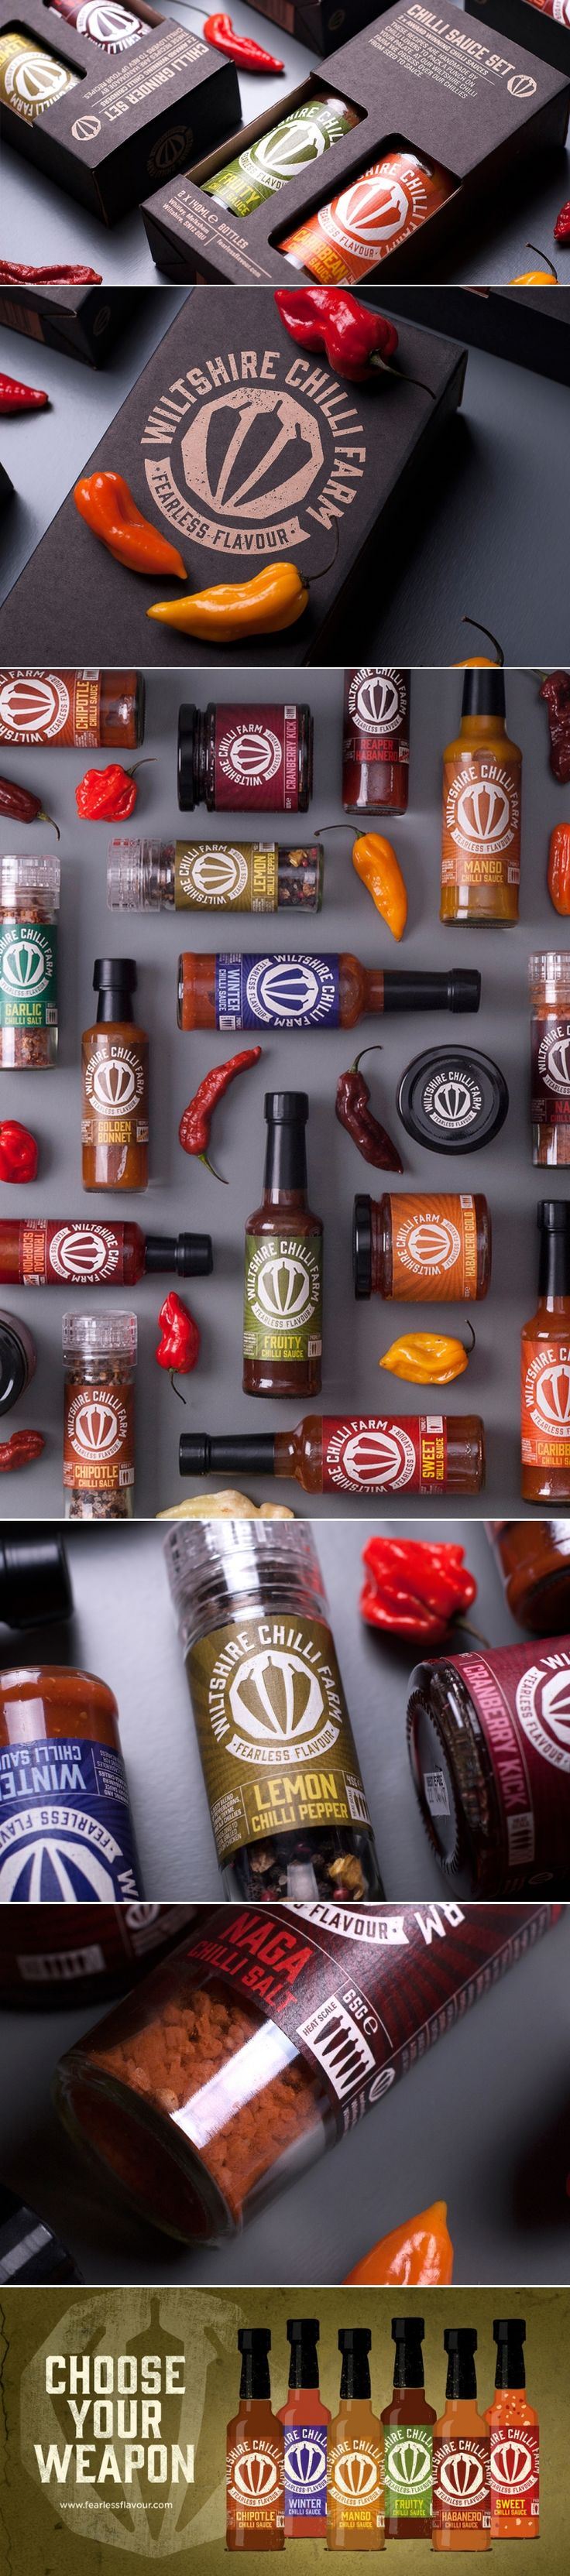 Wiltshire Chilli Farm — The Dieline | Packaging & Branding Design & Innovation News